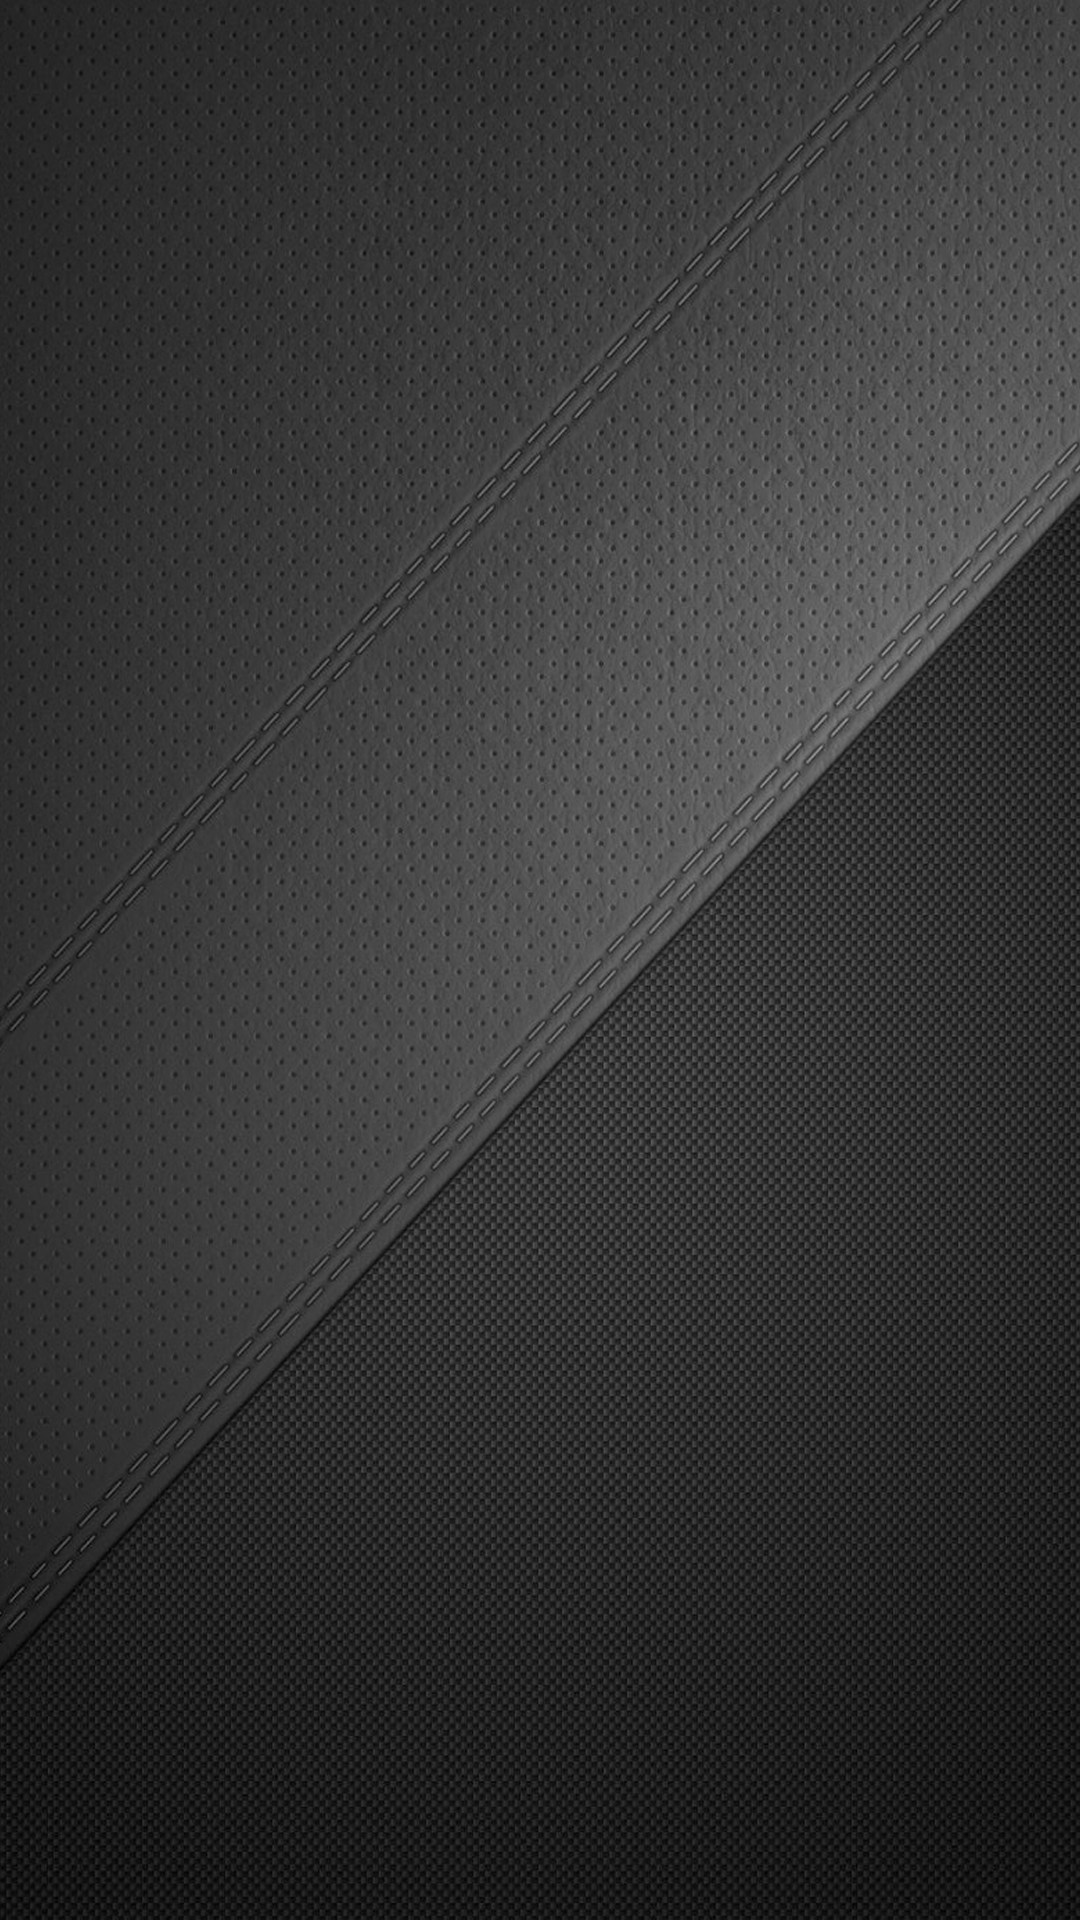 Leather htc one wallpaper   Best htc one wallpapers and easy to 1080x1920